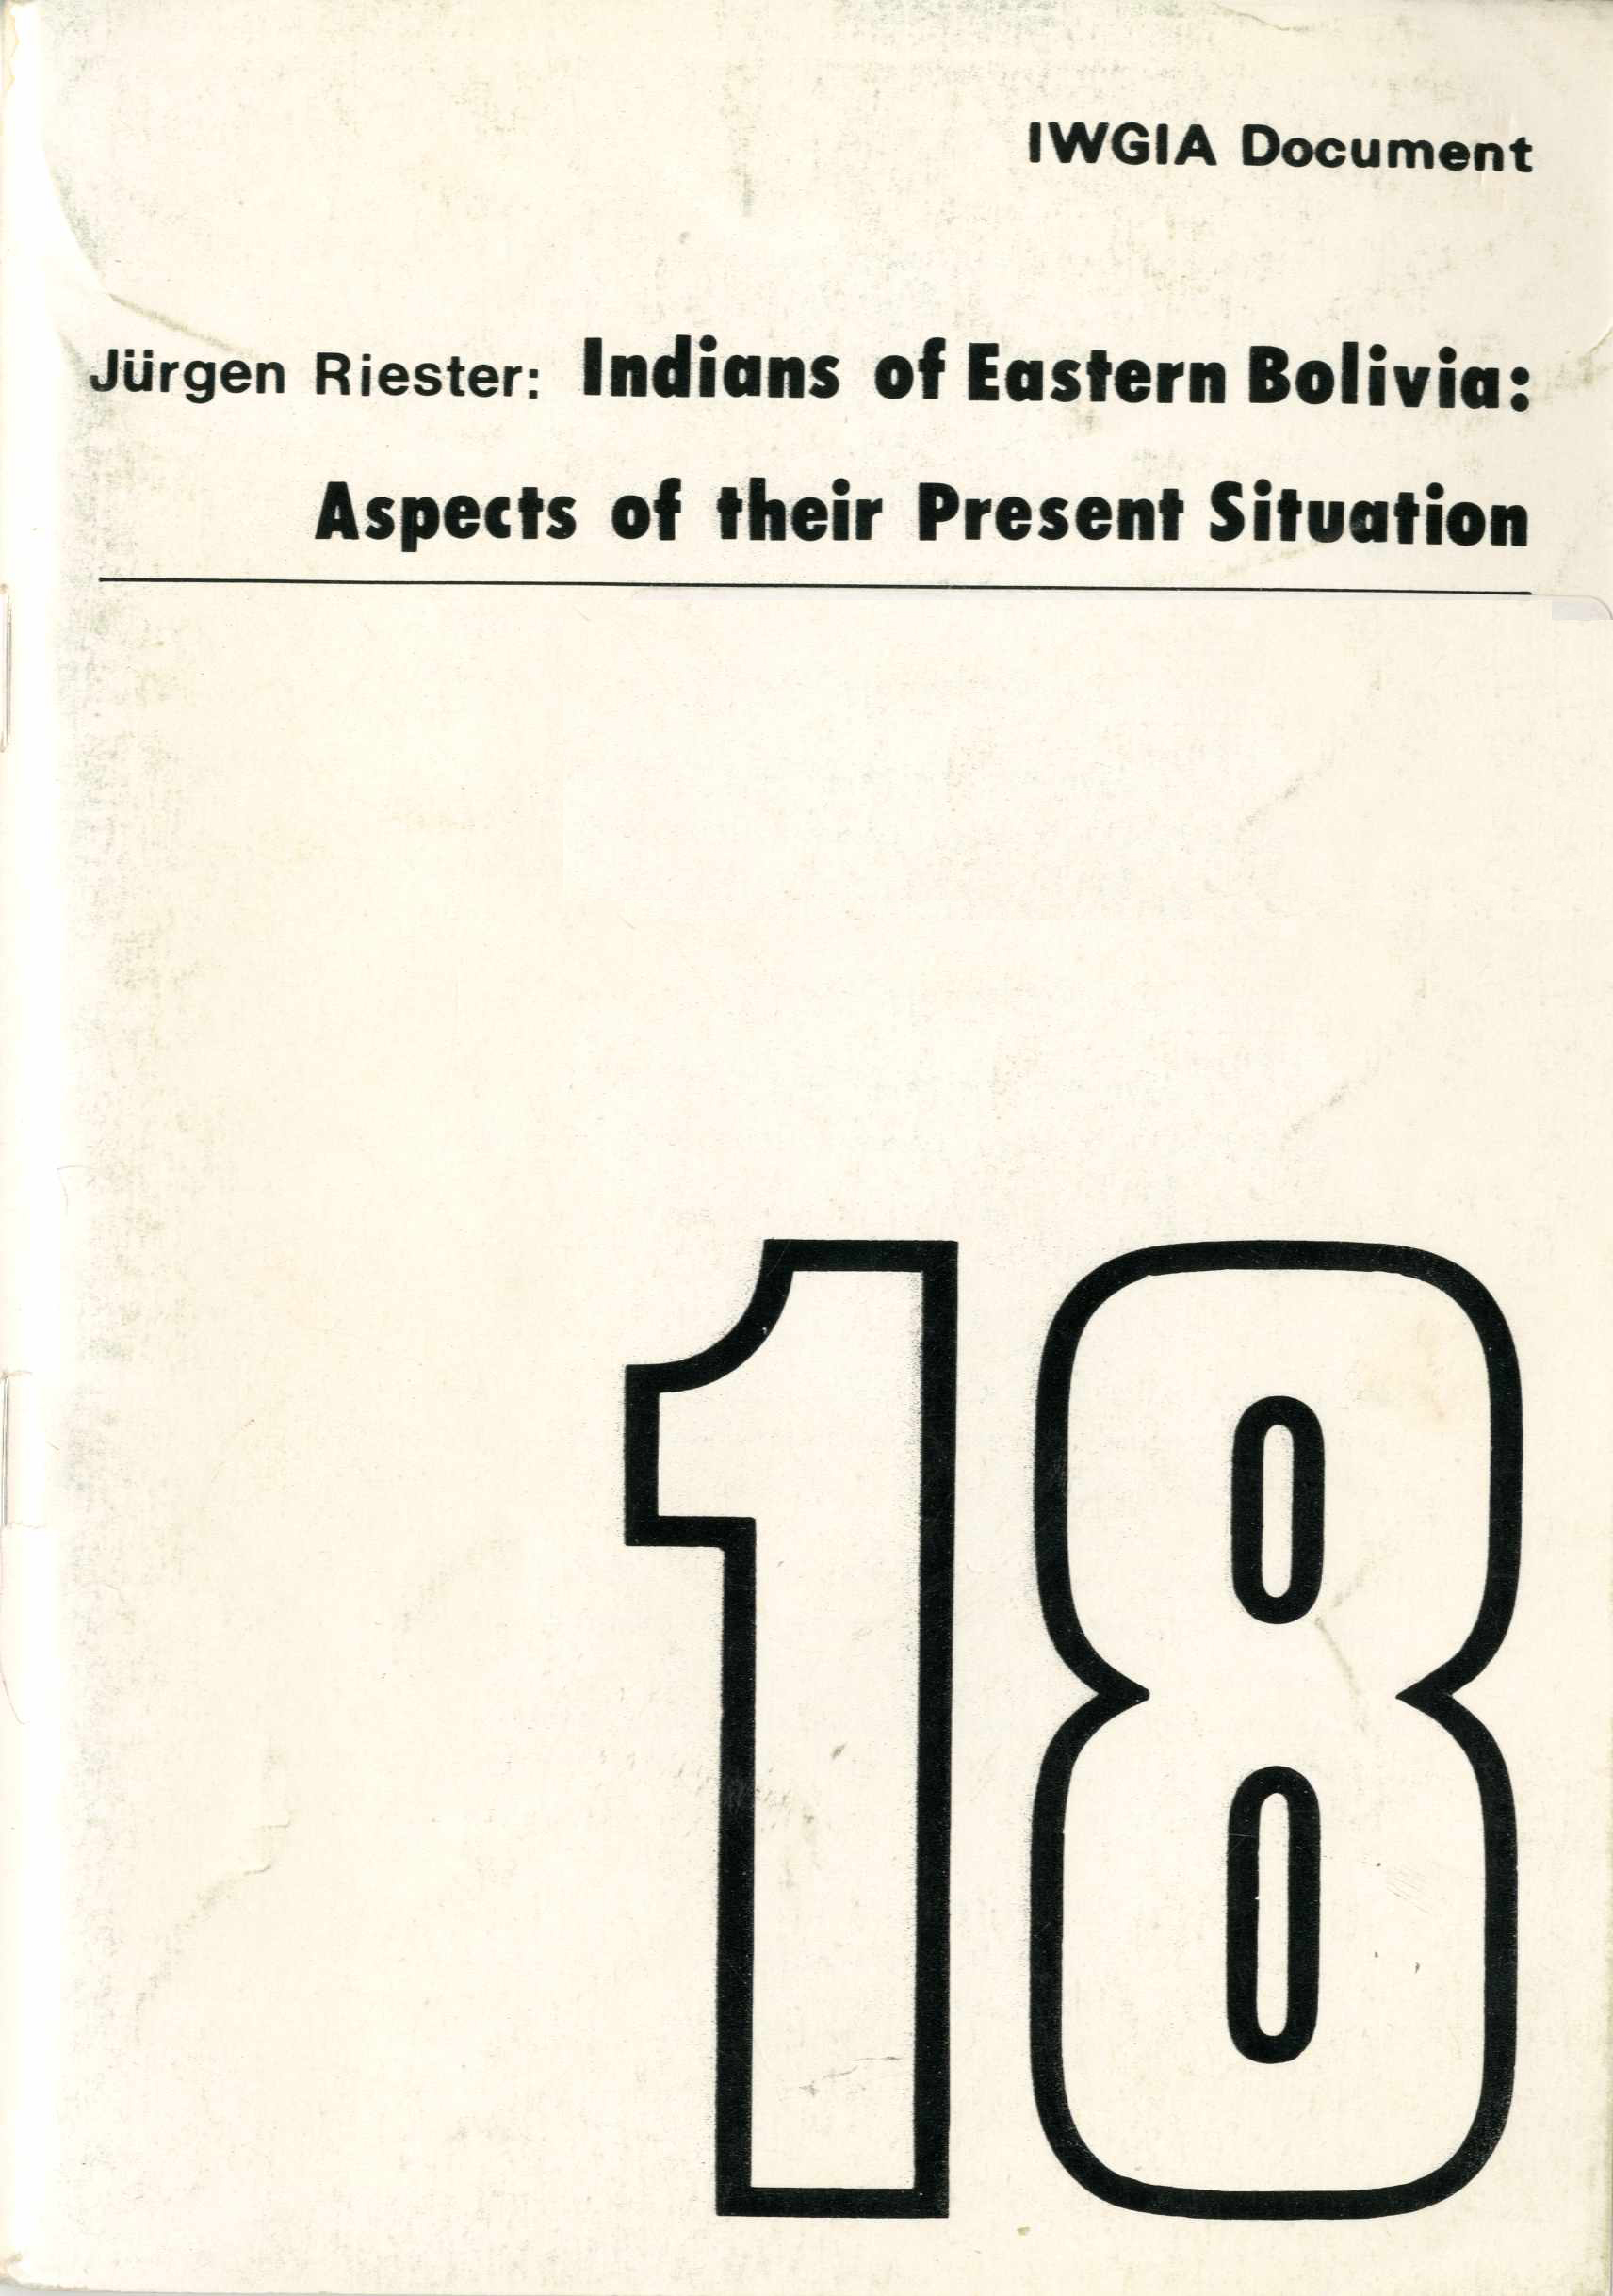 Indians of Eastern Bolivia: Aspects of their Present Situation Image